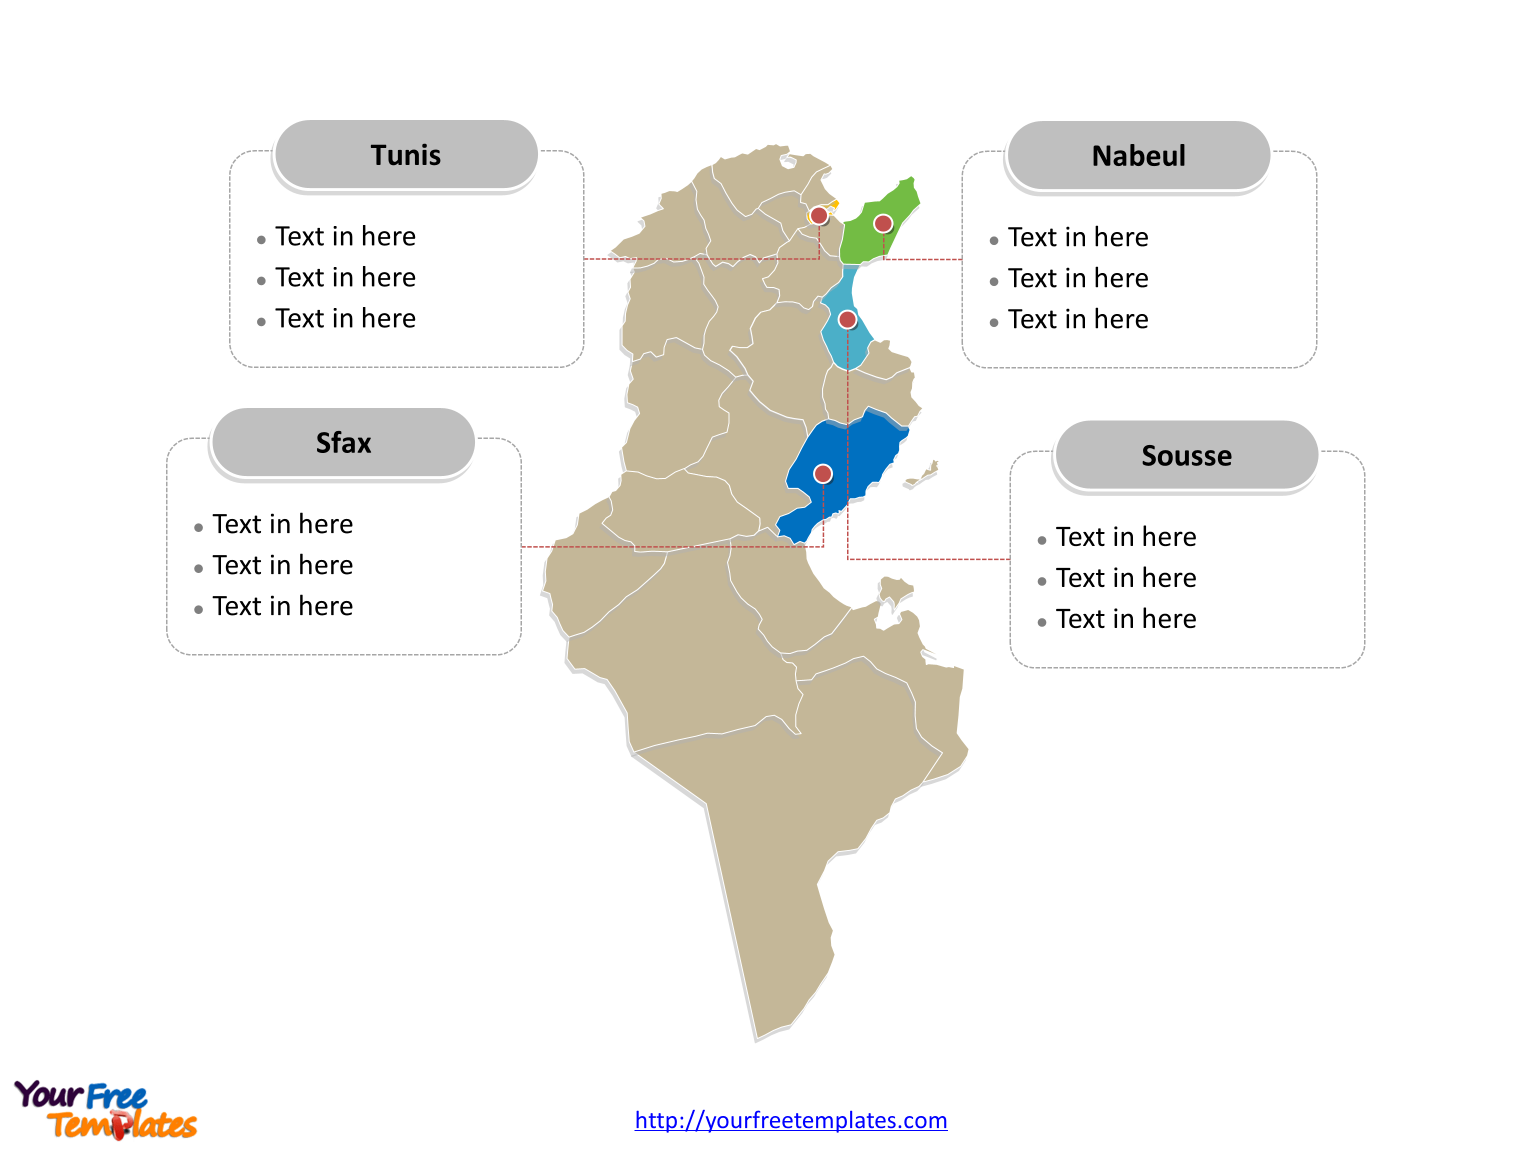 Free Tunisia Editable Map Free PowerPoint Templates - Tunisia country political map